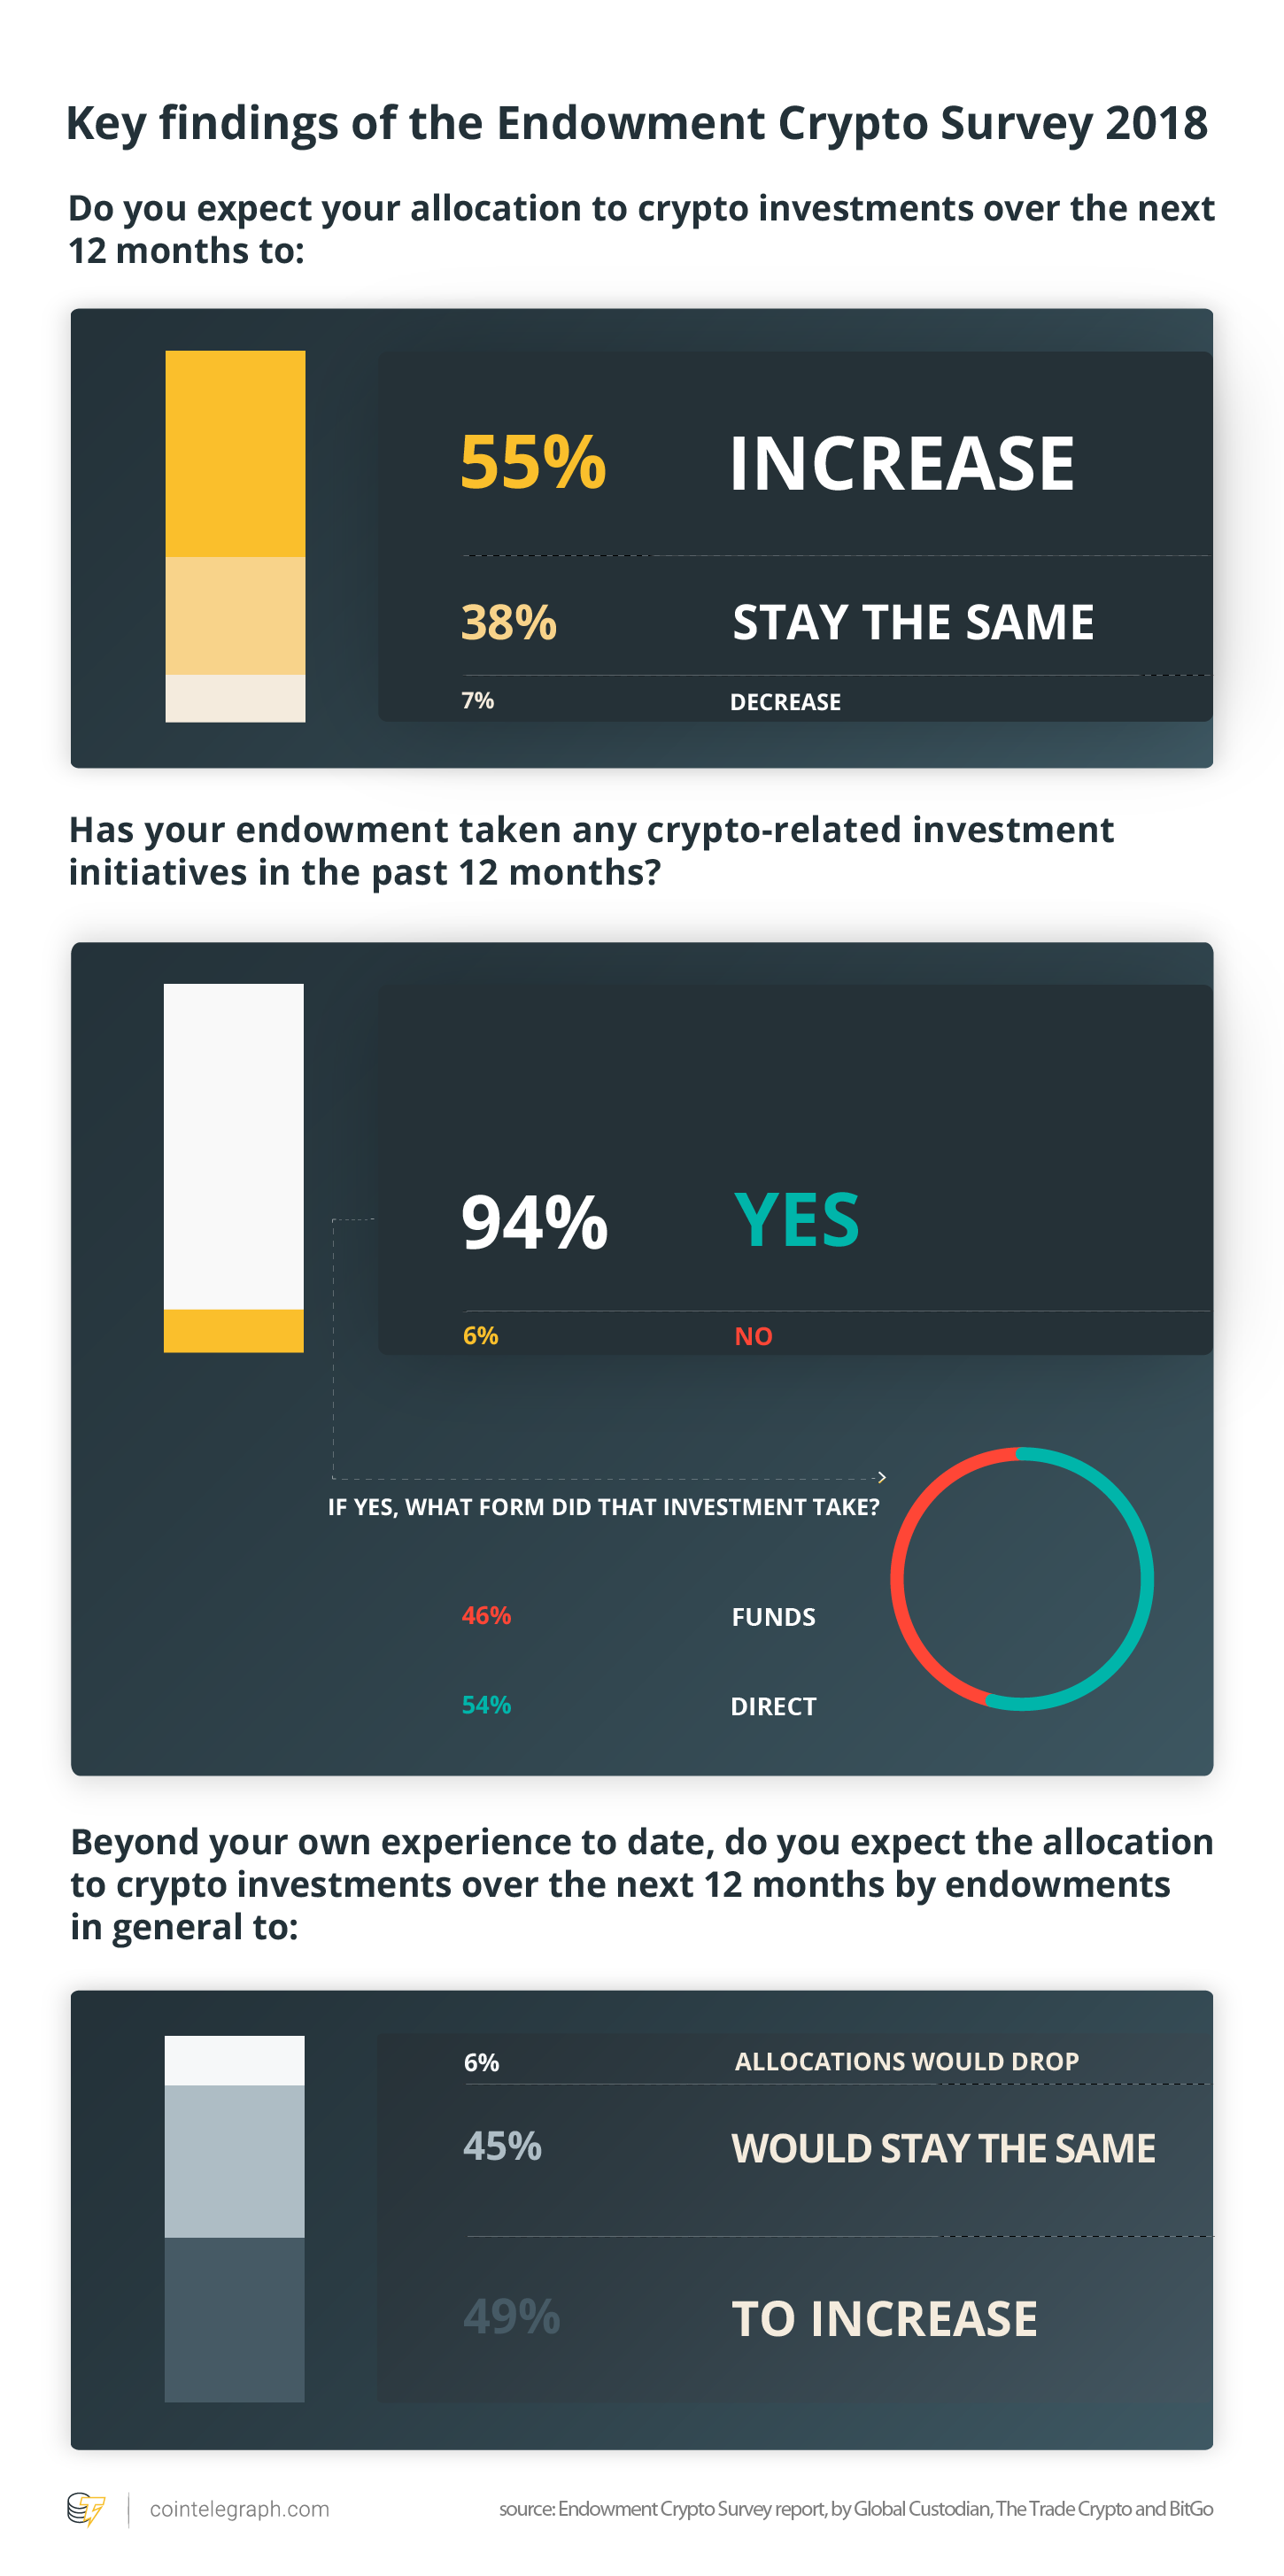 Key findings of the Endowment Crypto Survey 2018